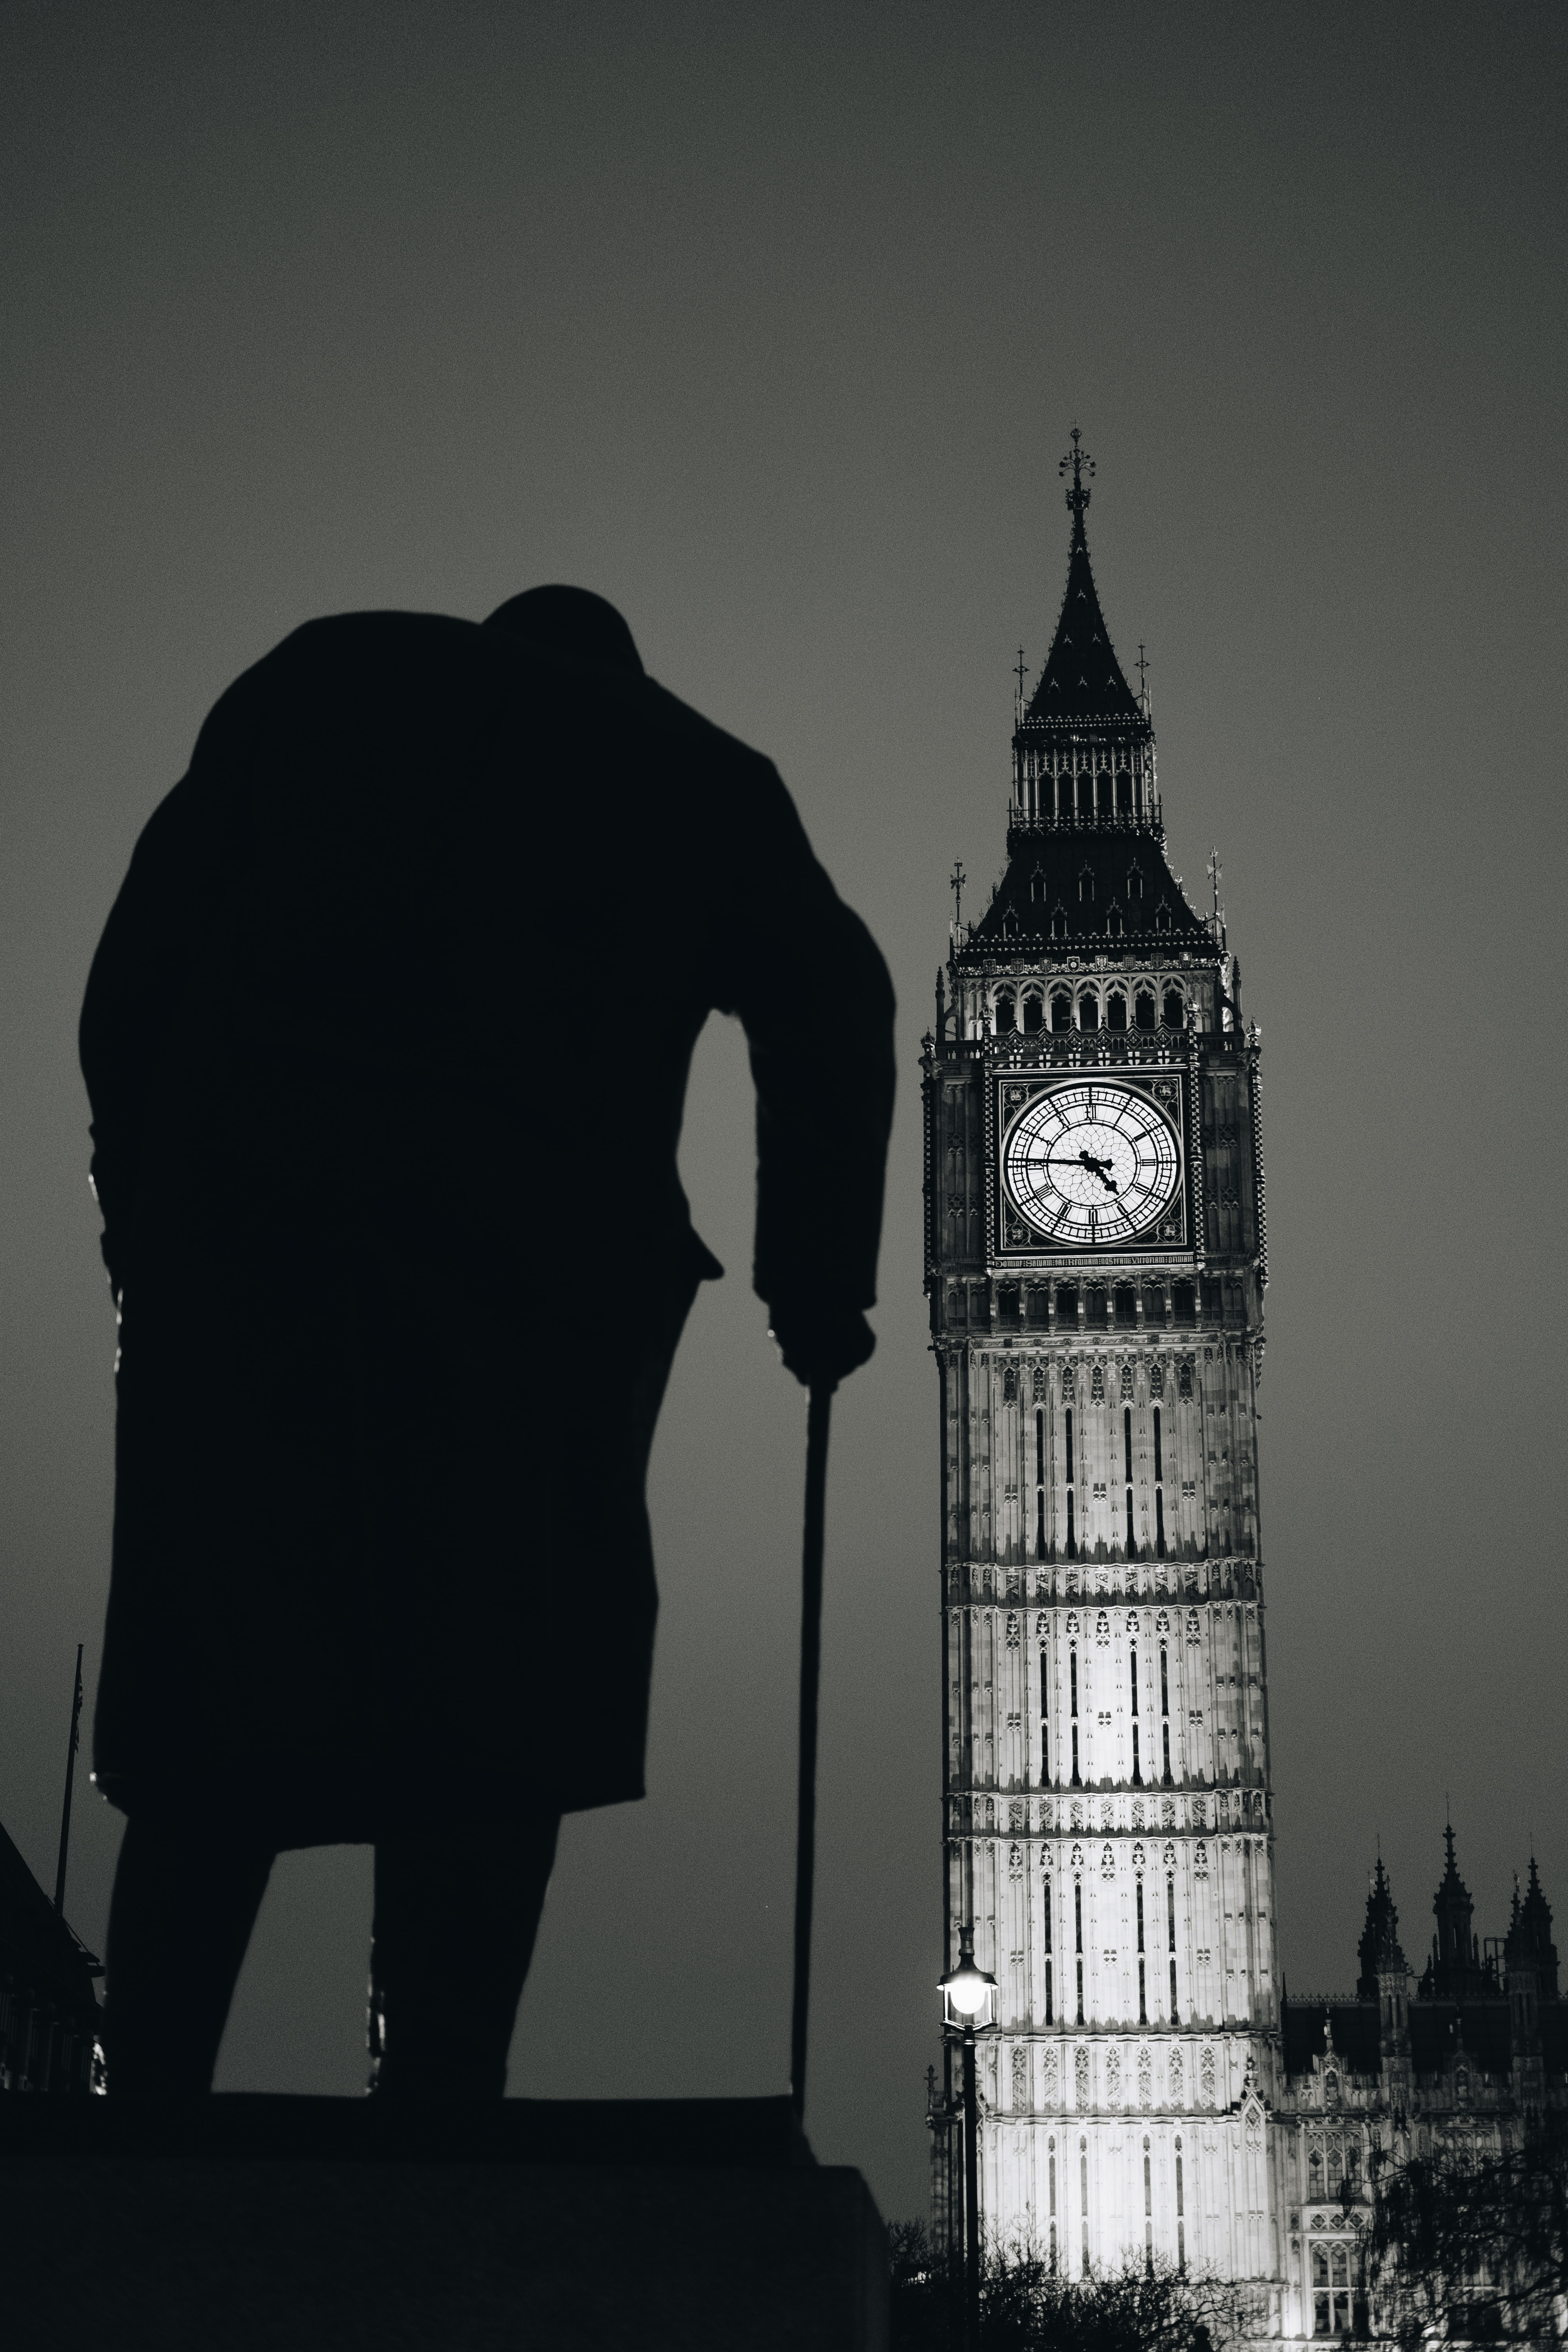 Silhouette of a man with a cane far in the foreground with Big Ben in the background